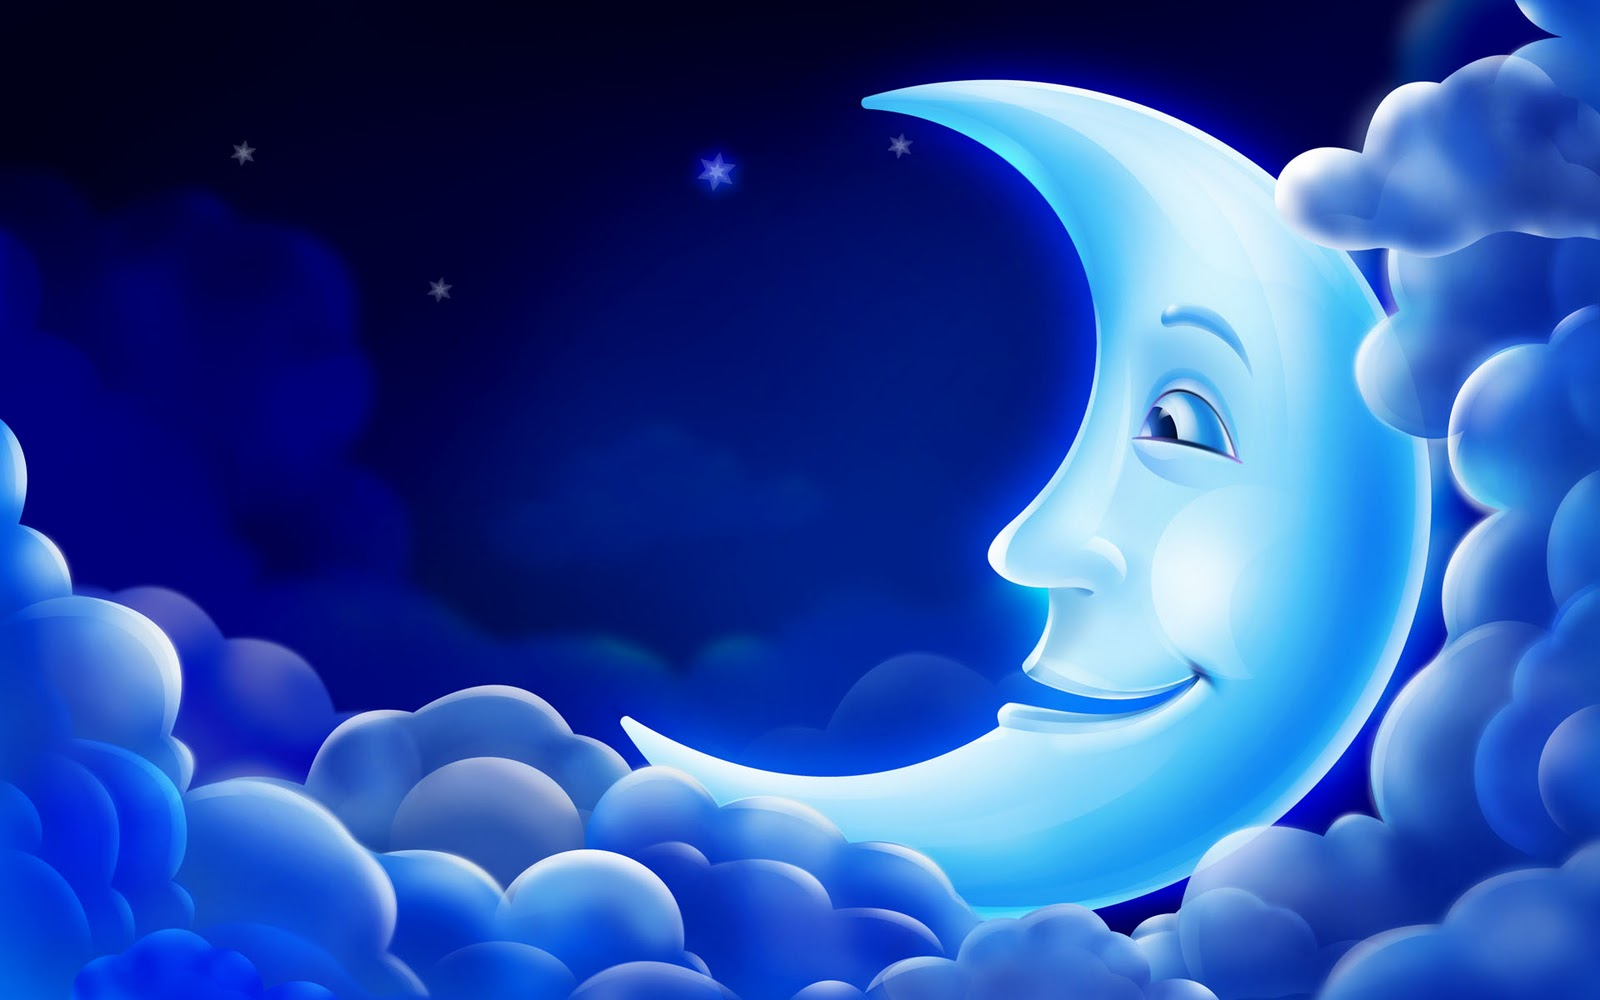 CG 3D Animation PC Background Blue Moon Smile Sky  Star Wallpapers